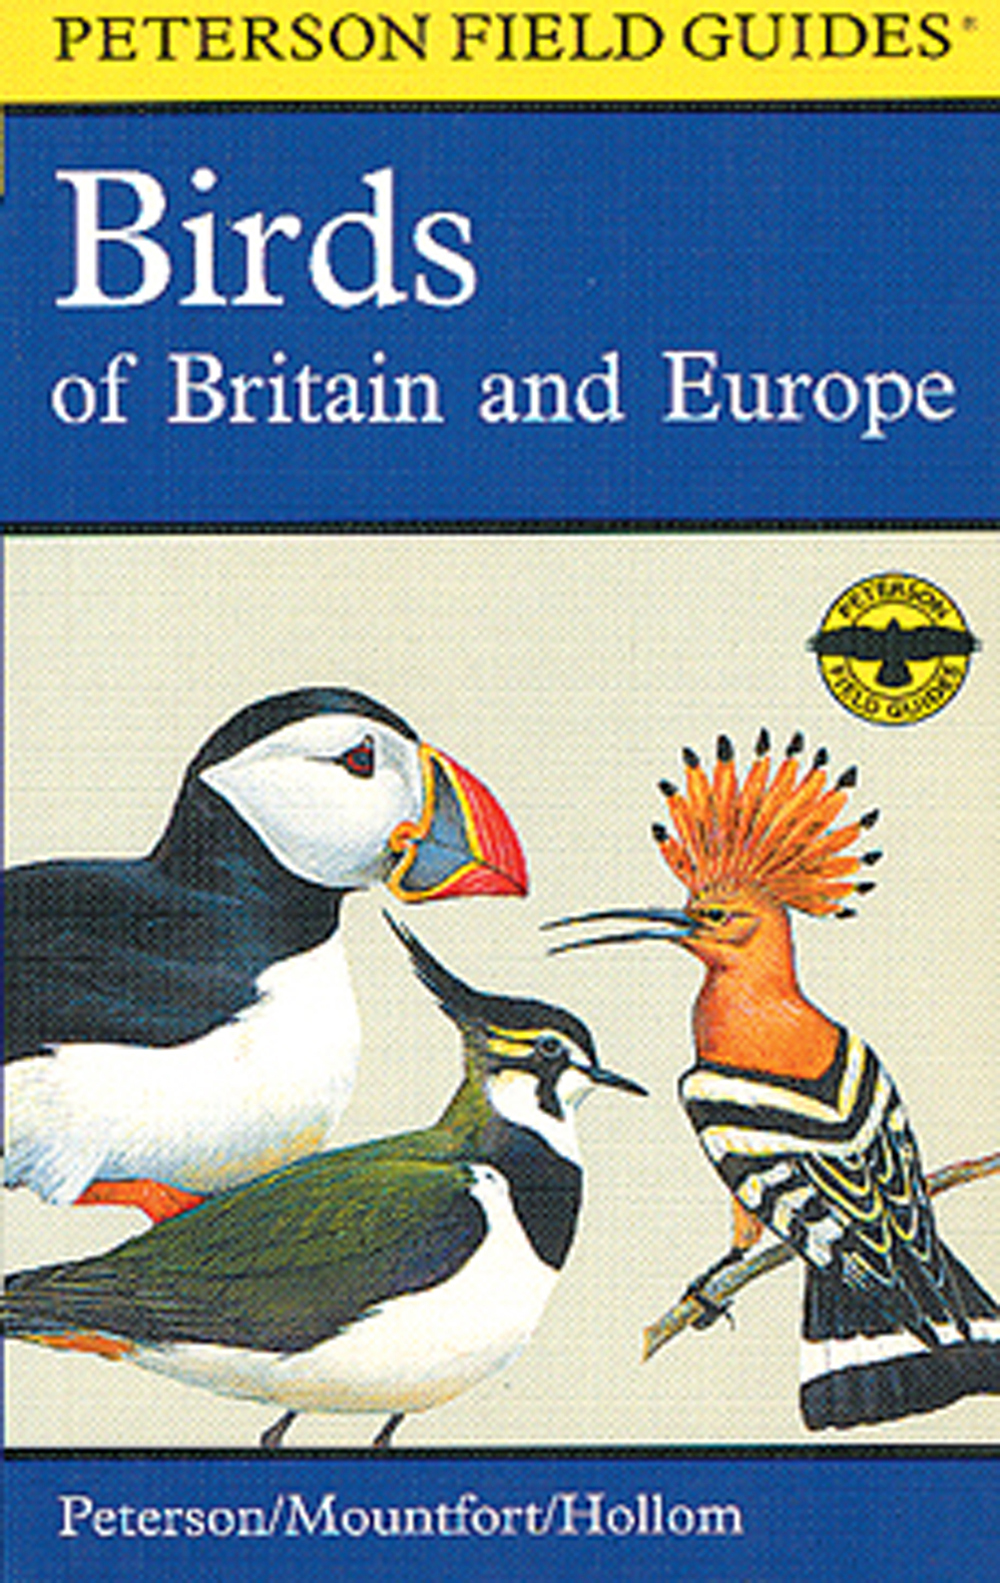 Birds of Britain and Europe (Peterson Field Guide®)